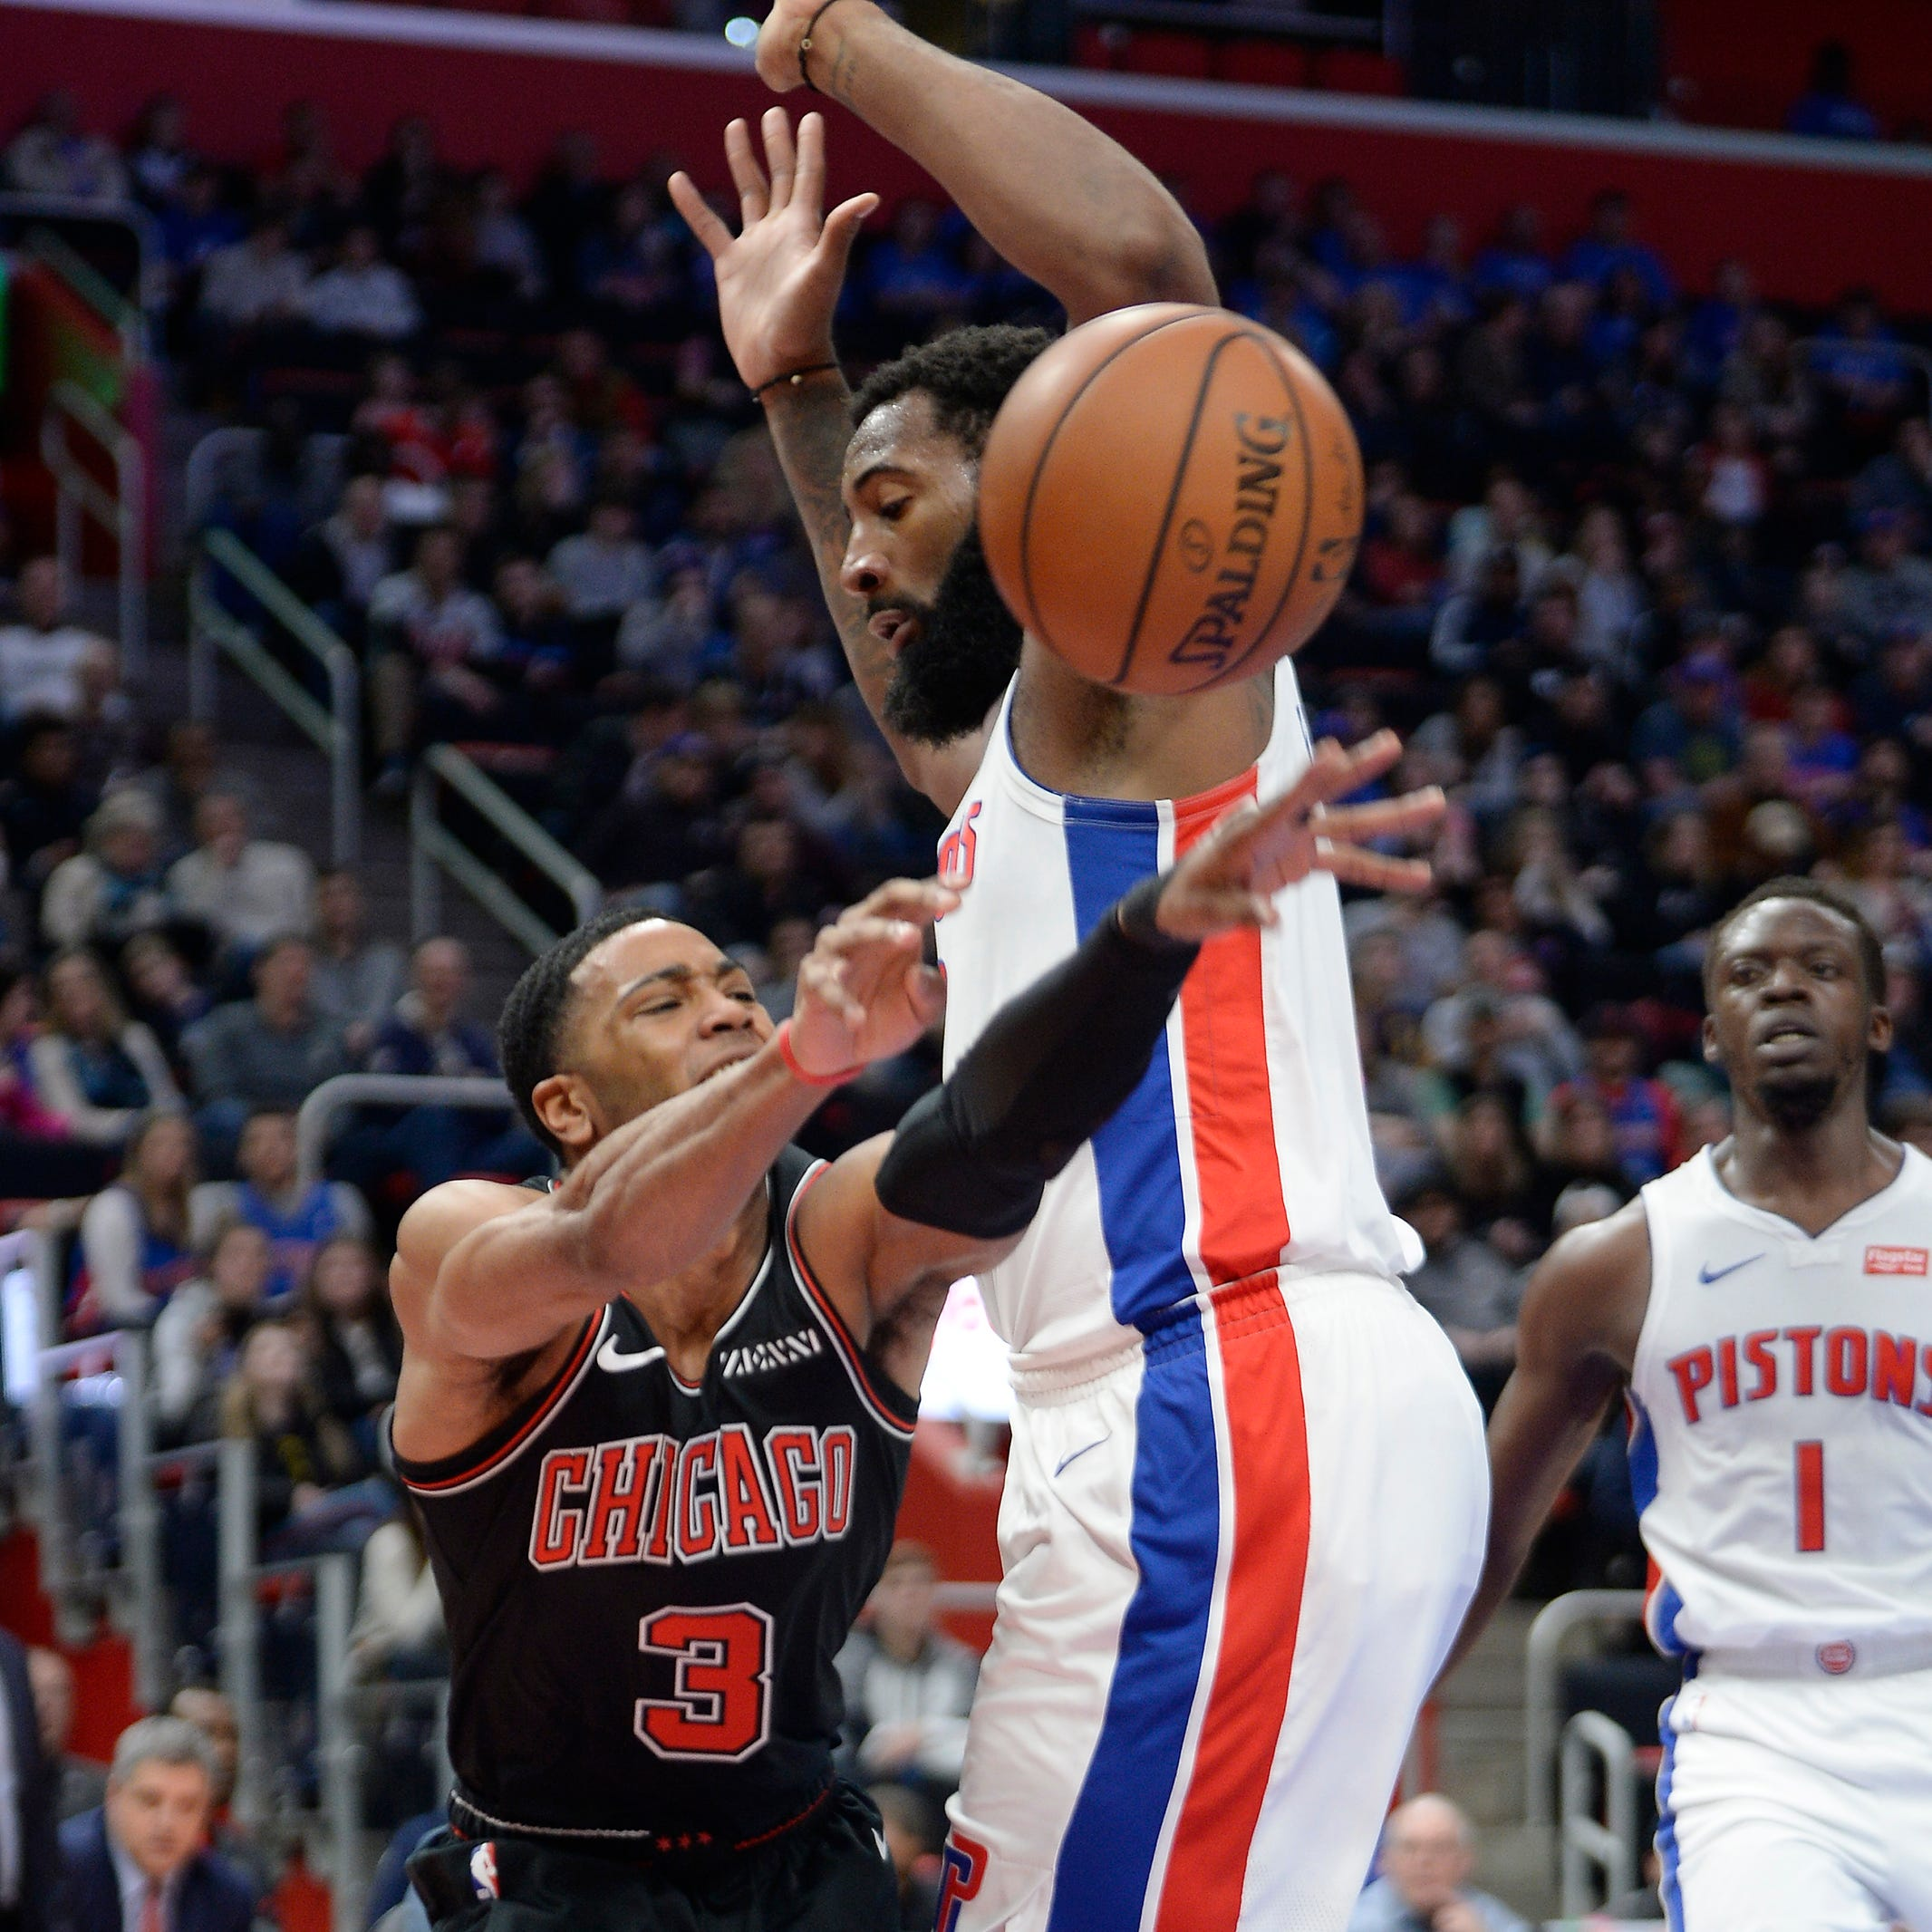 Pistons stay hot, bounce Bulls for fifth straight win